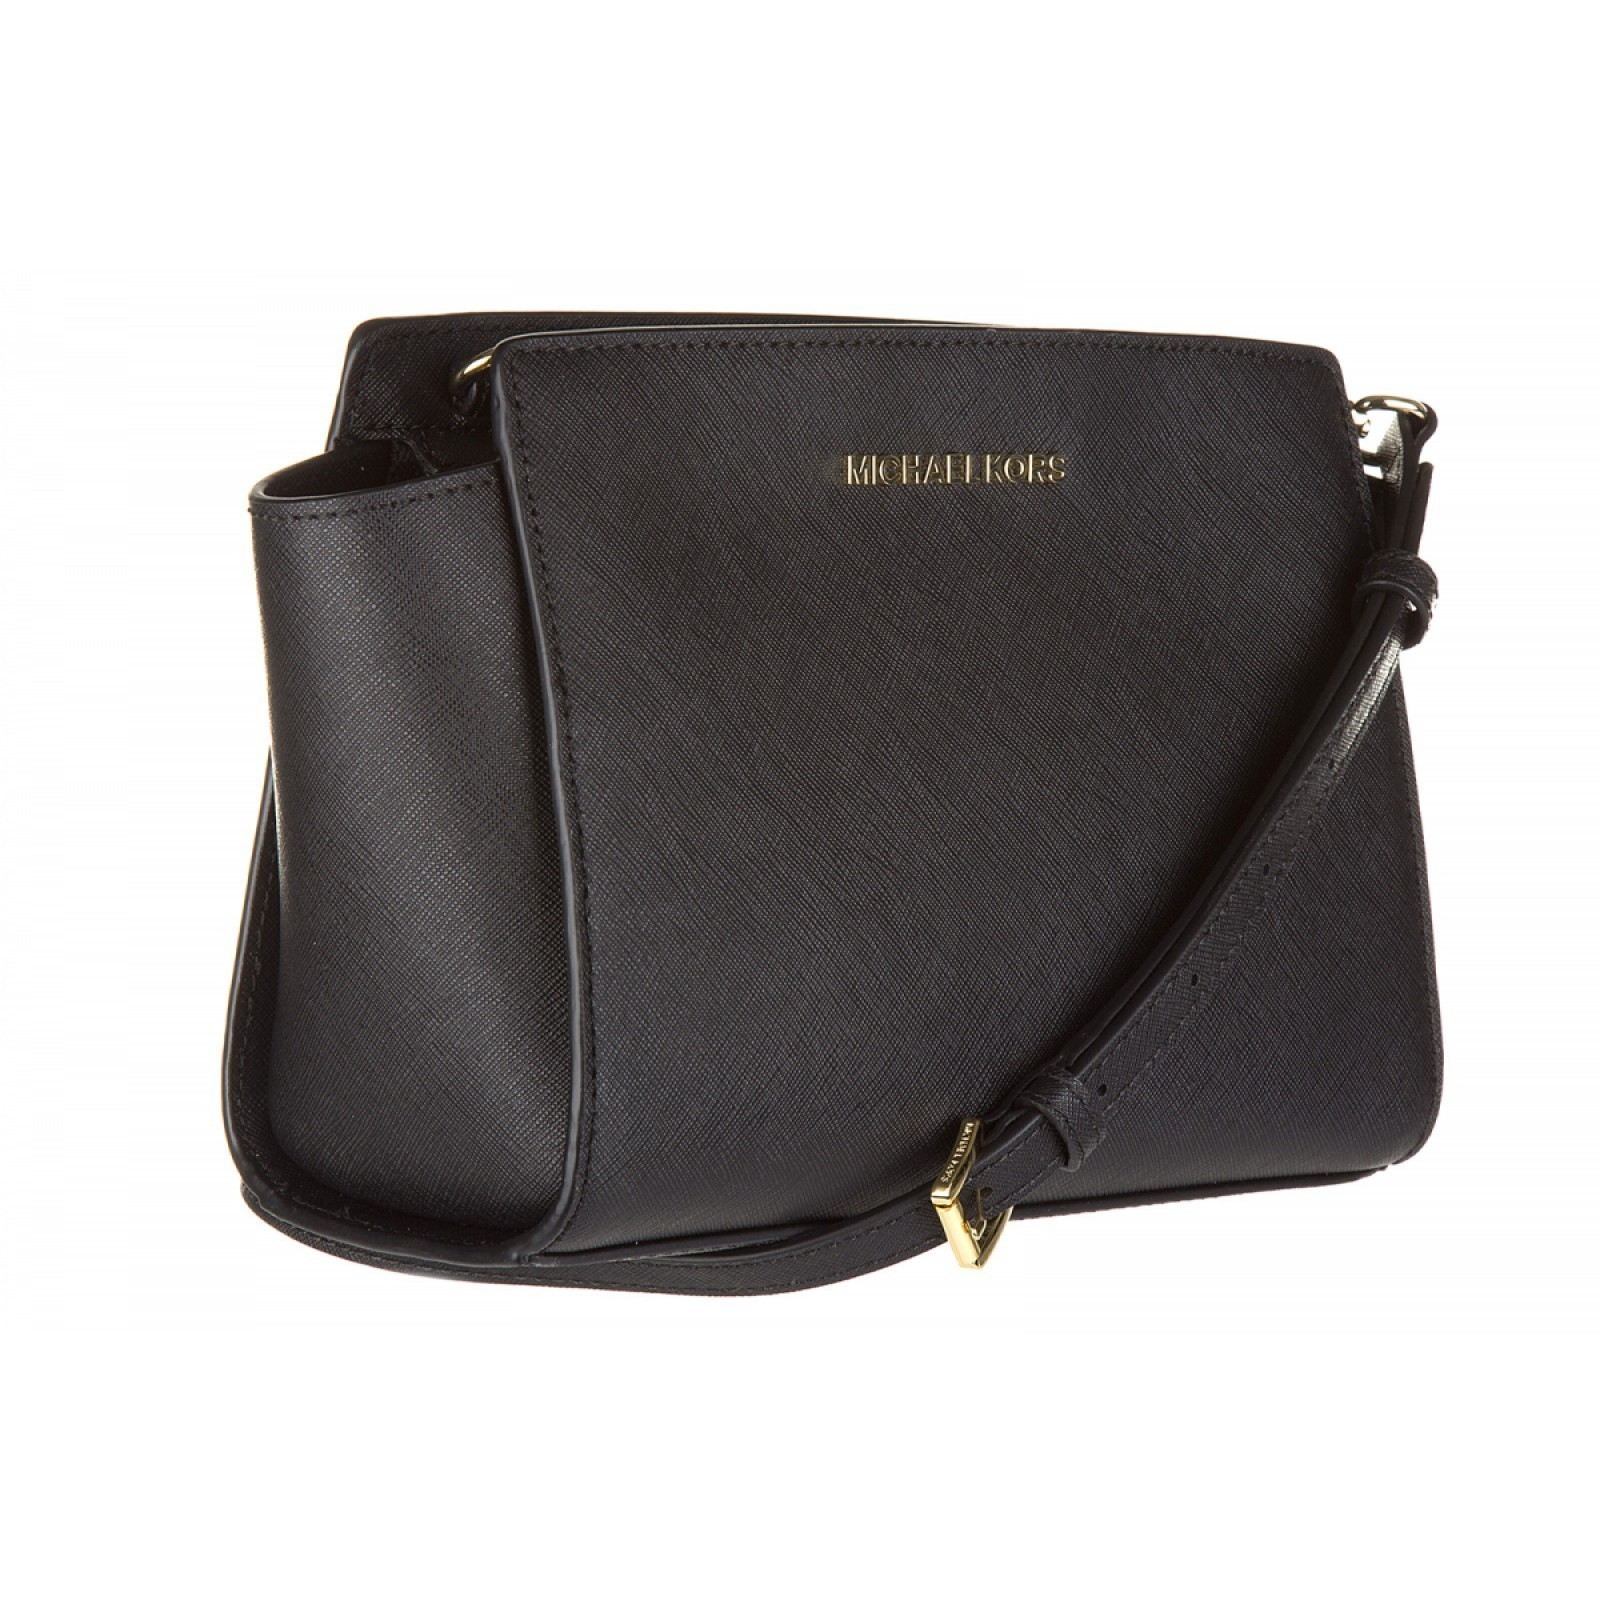 関税送料込 leather cross-body messenger shoulder bag selma♪